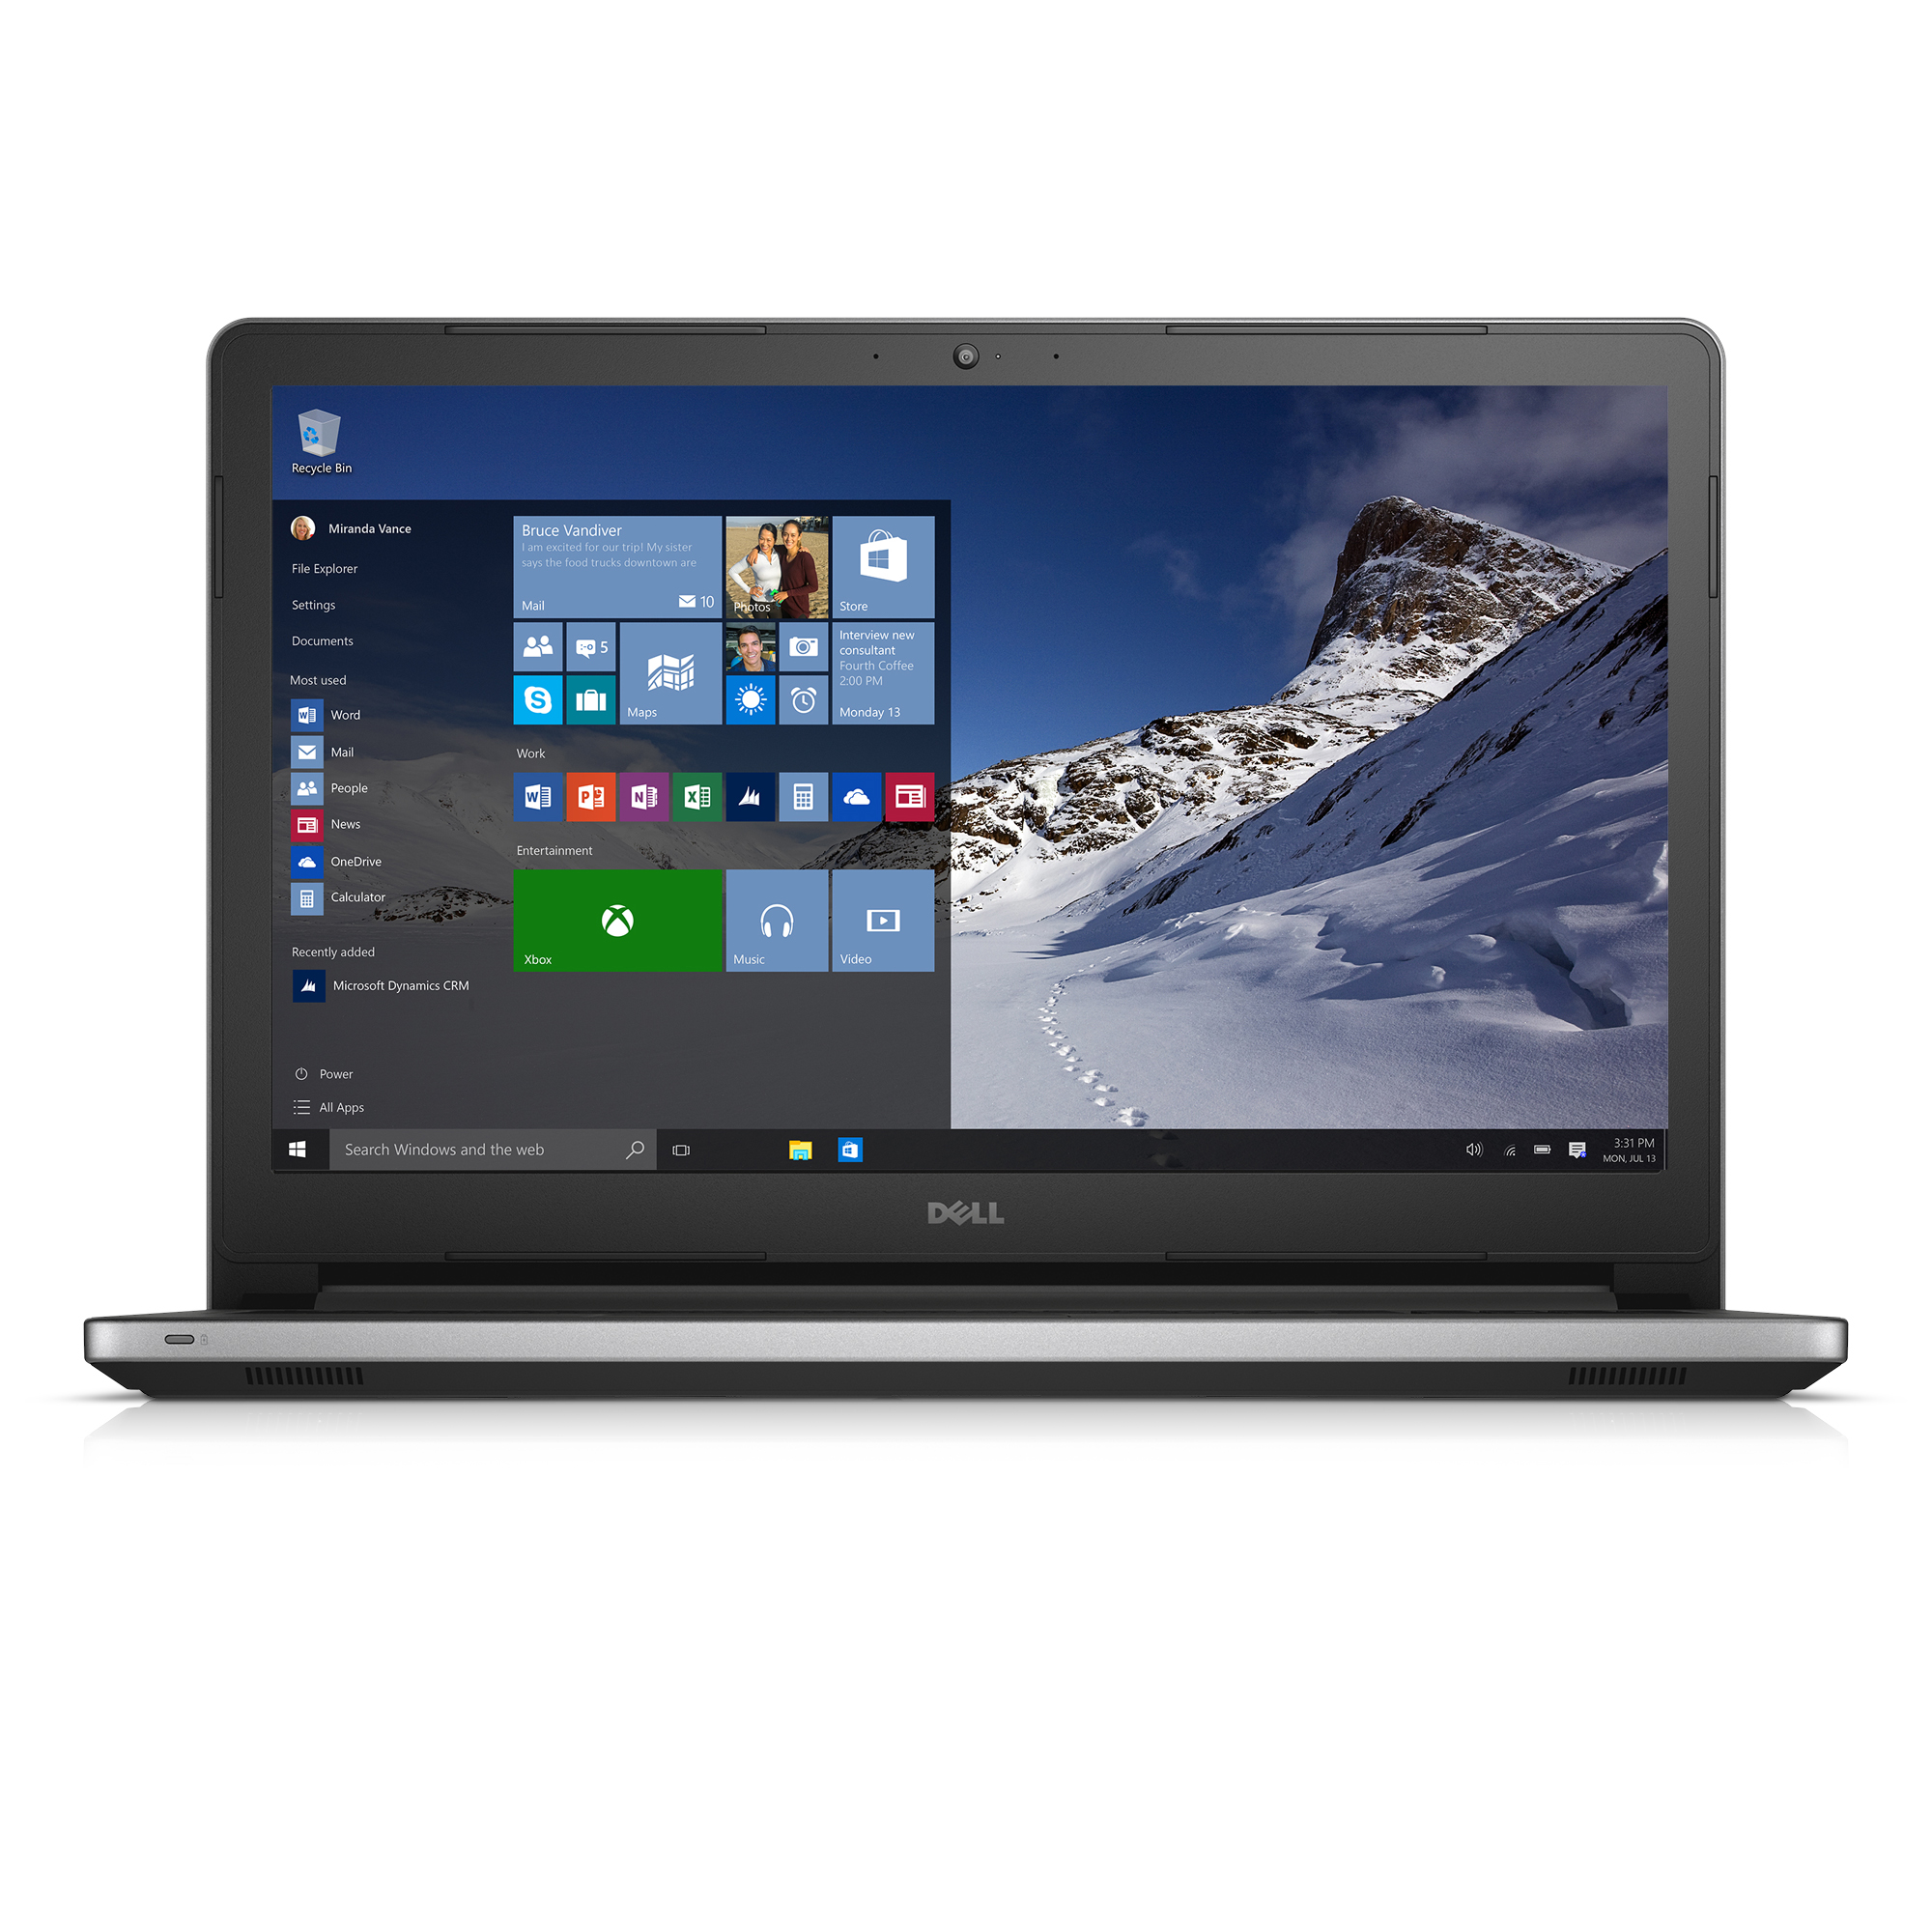 "Dell - Inspiron 15"" Laptop - AMD A10 - 12GB Memory- 1TB HD"